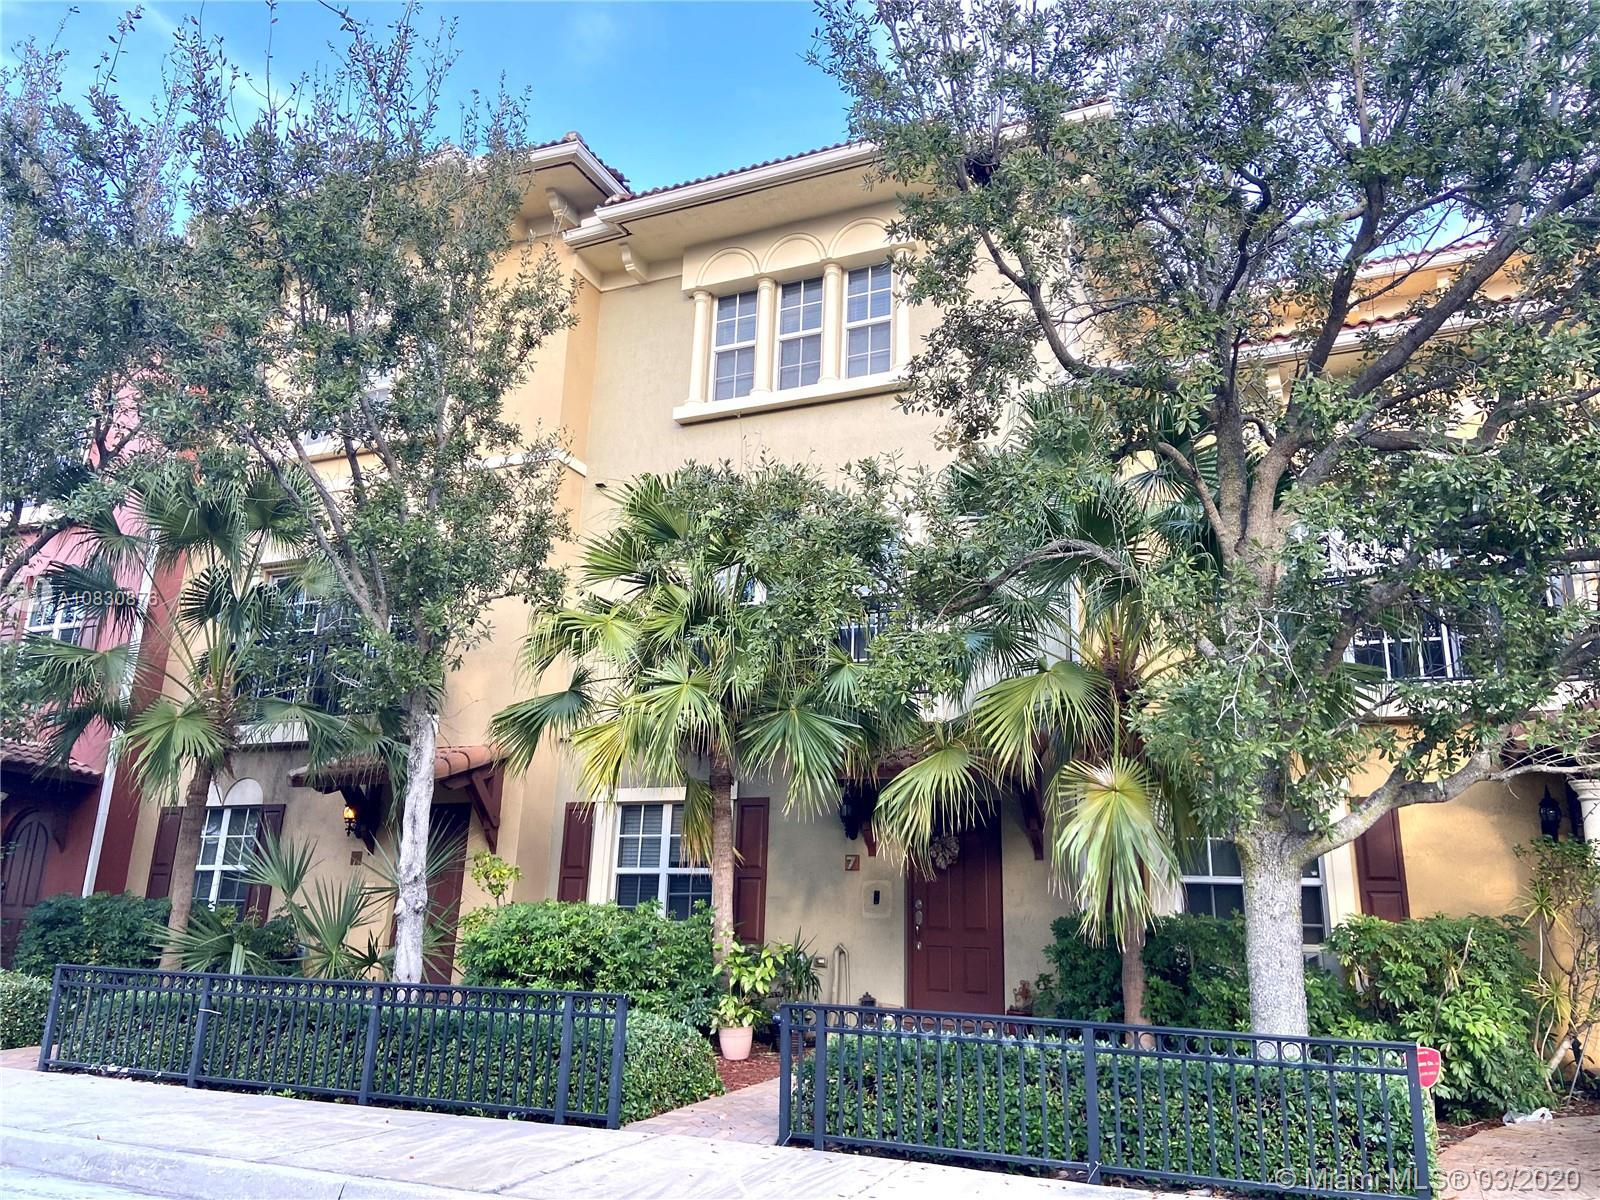 Magnificent Large 3 Story Townhouse, minutes to the Intracoastal, Beaches, Parks, Restaurants and Sh